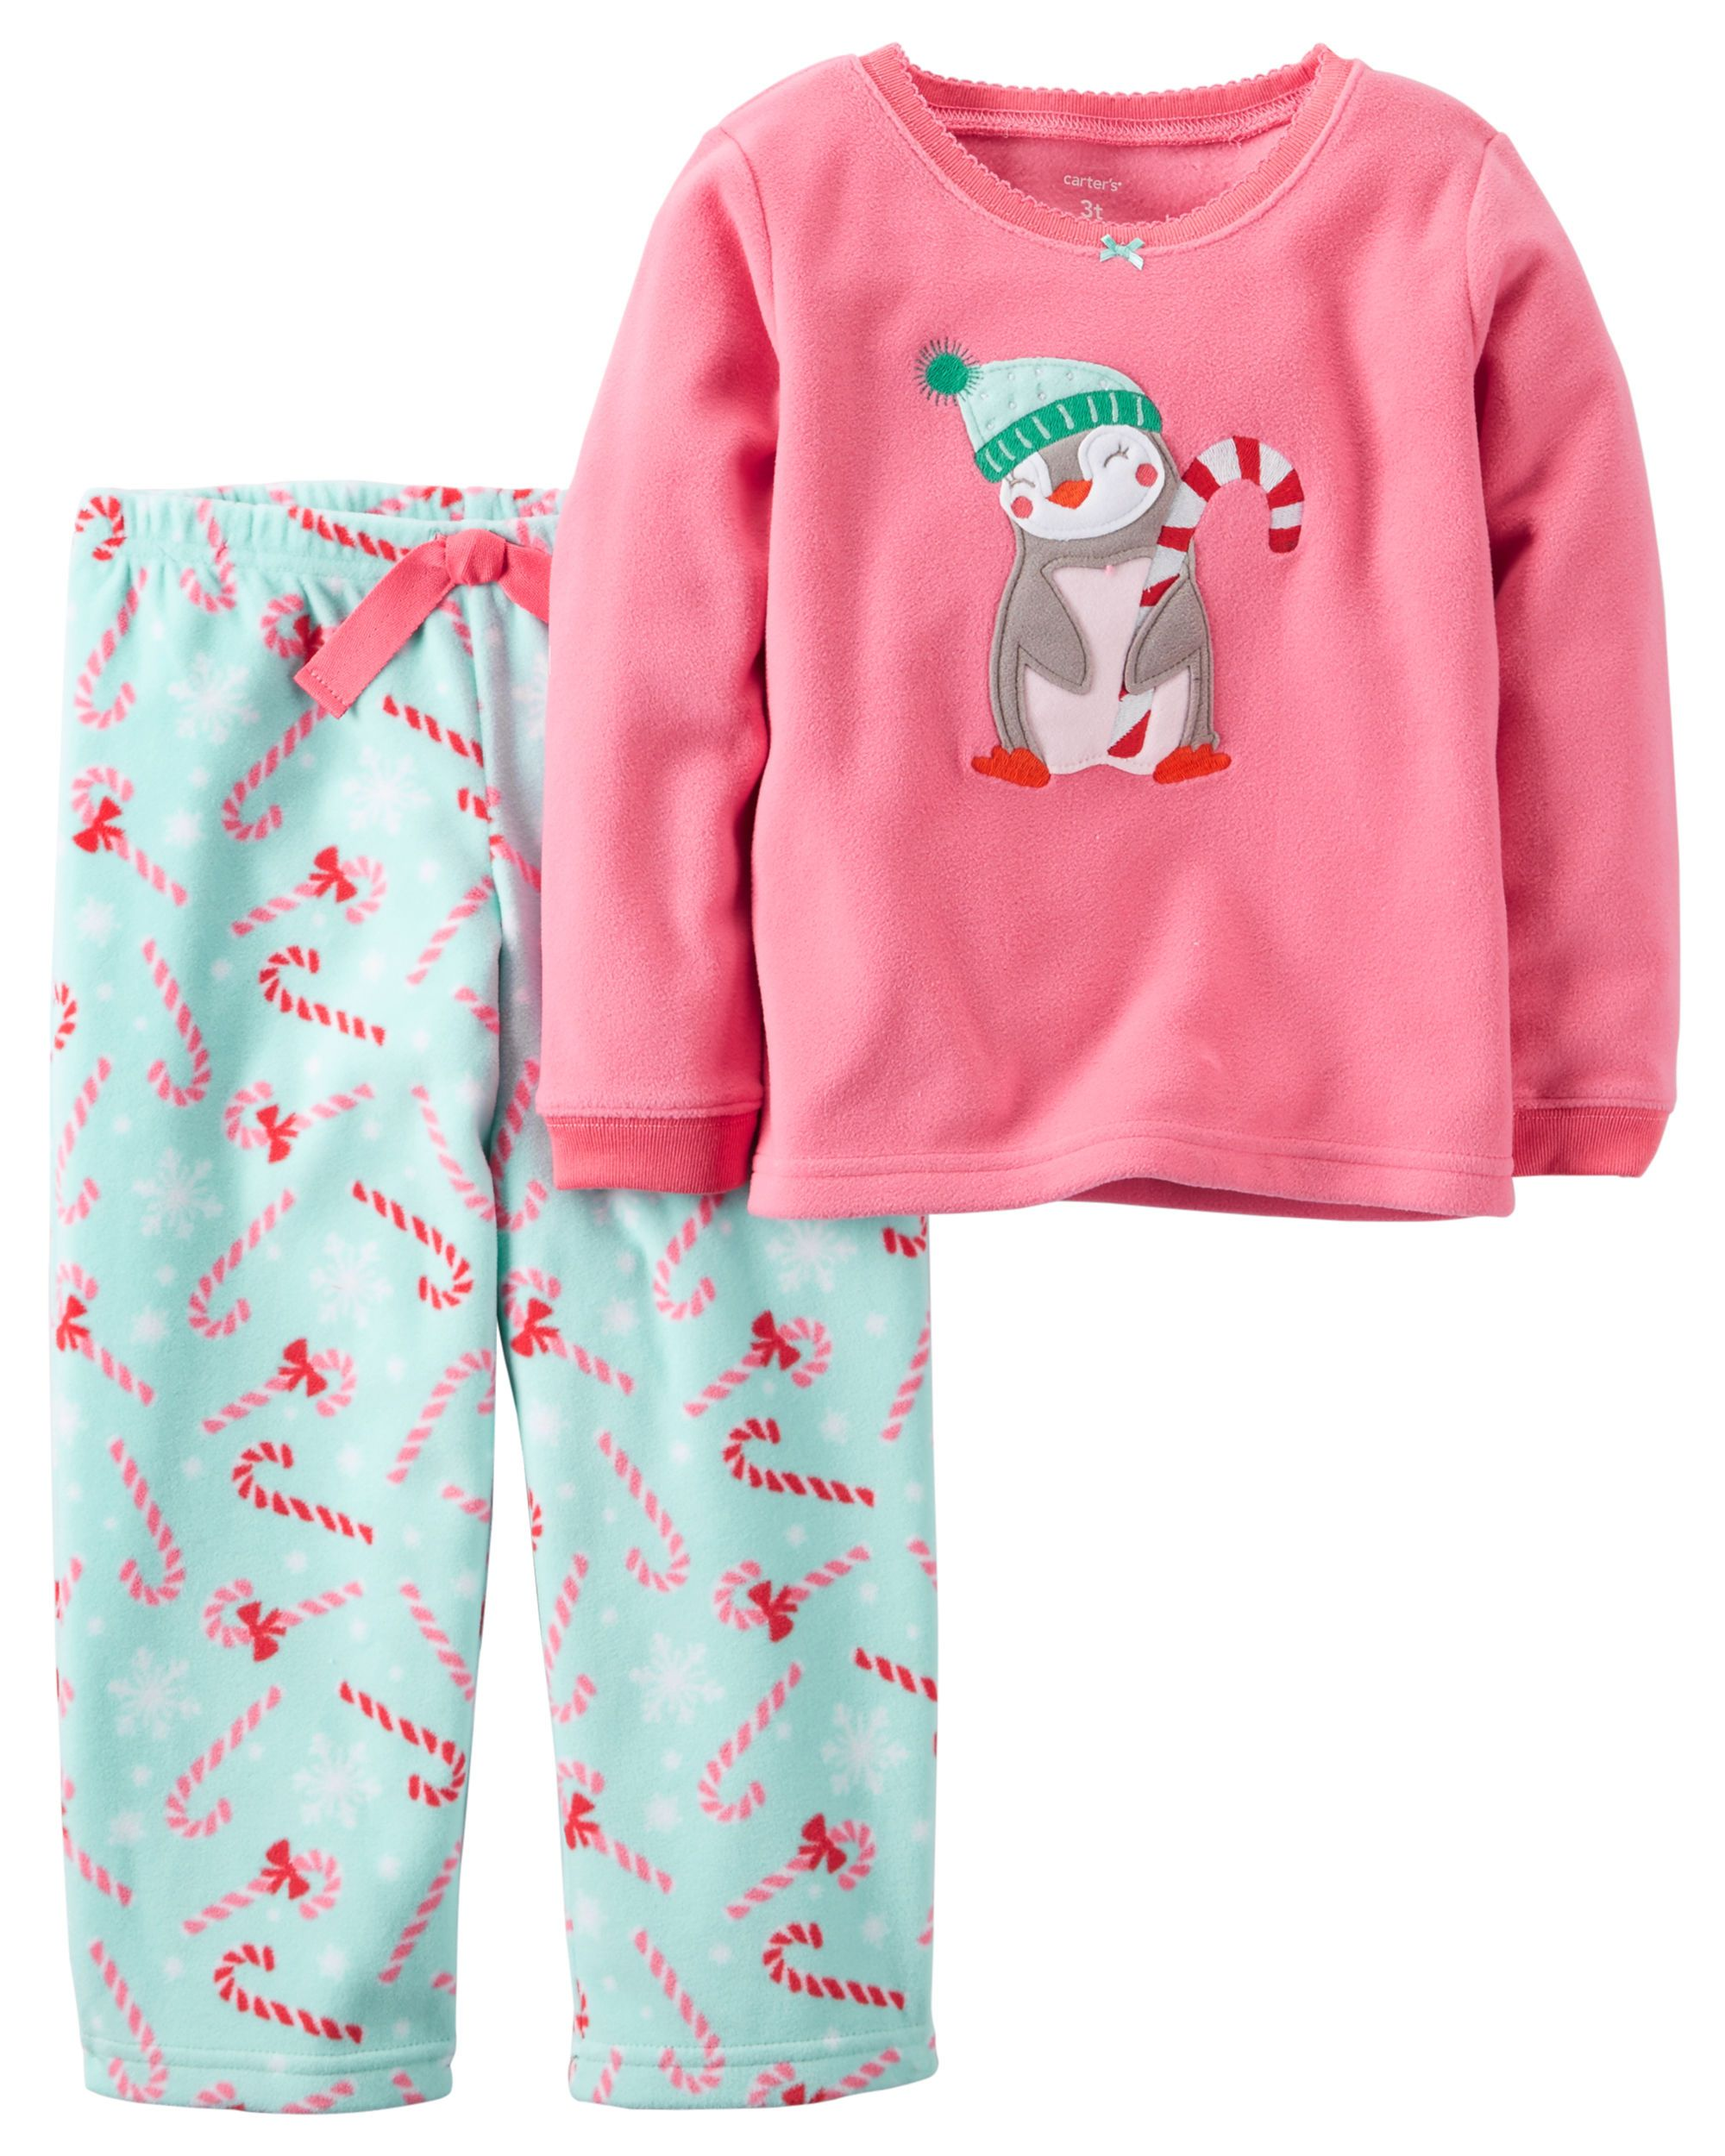 9202ffb6a06f Toddler Girl 2-Piece Fleece Christmas PJs from Carters.com. Shop ...